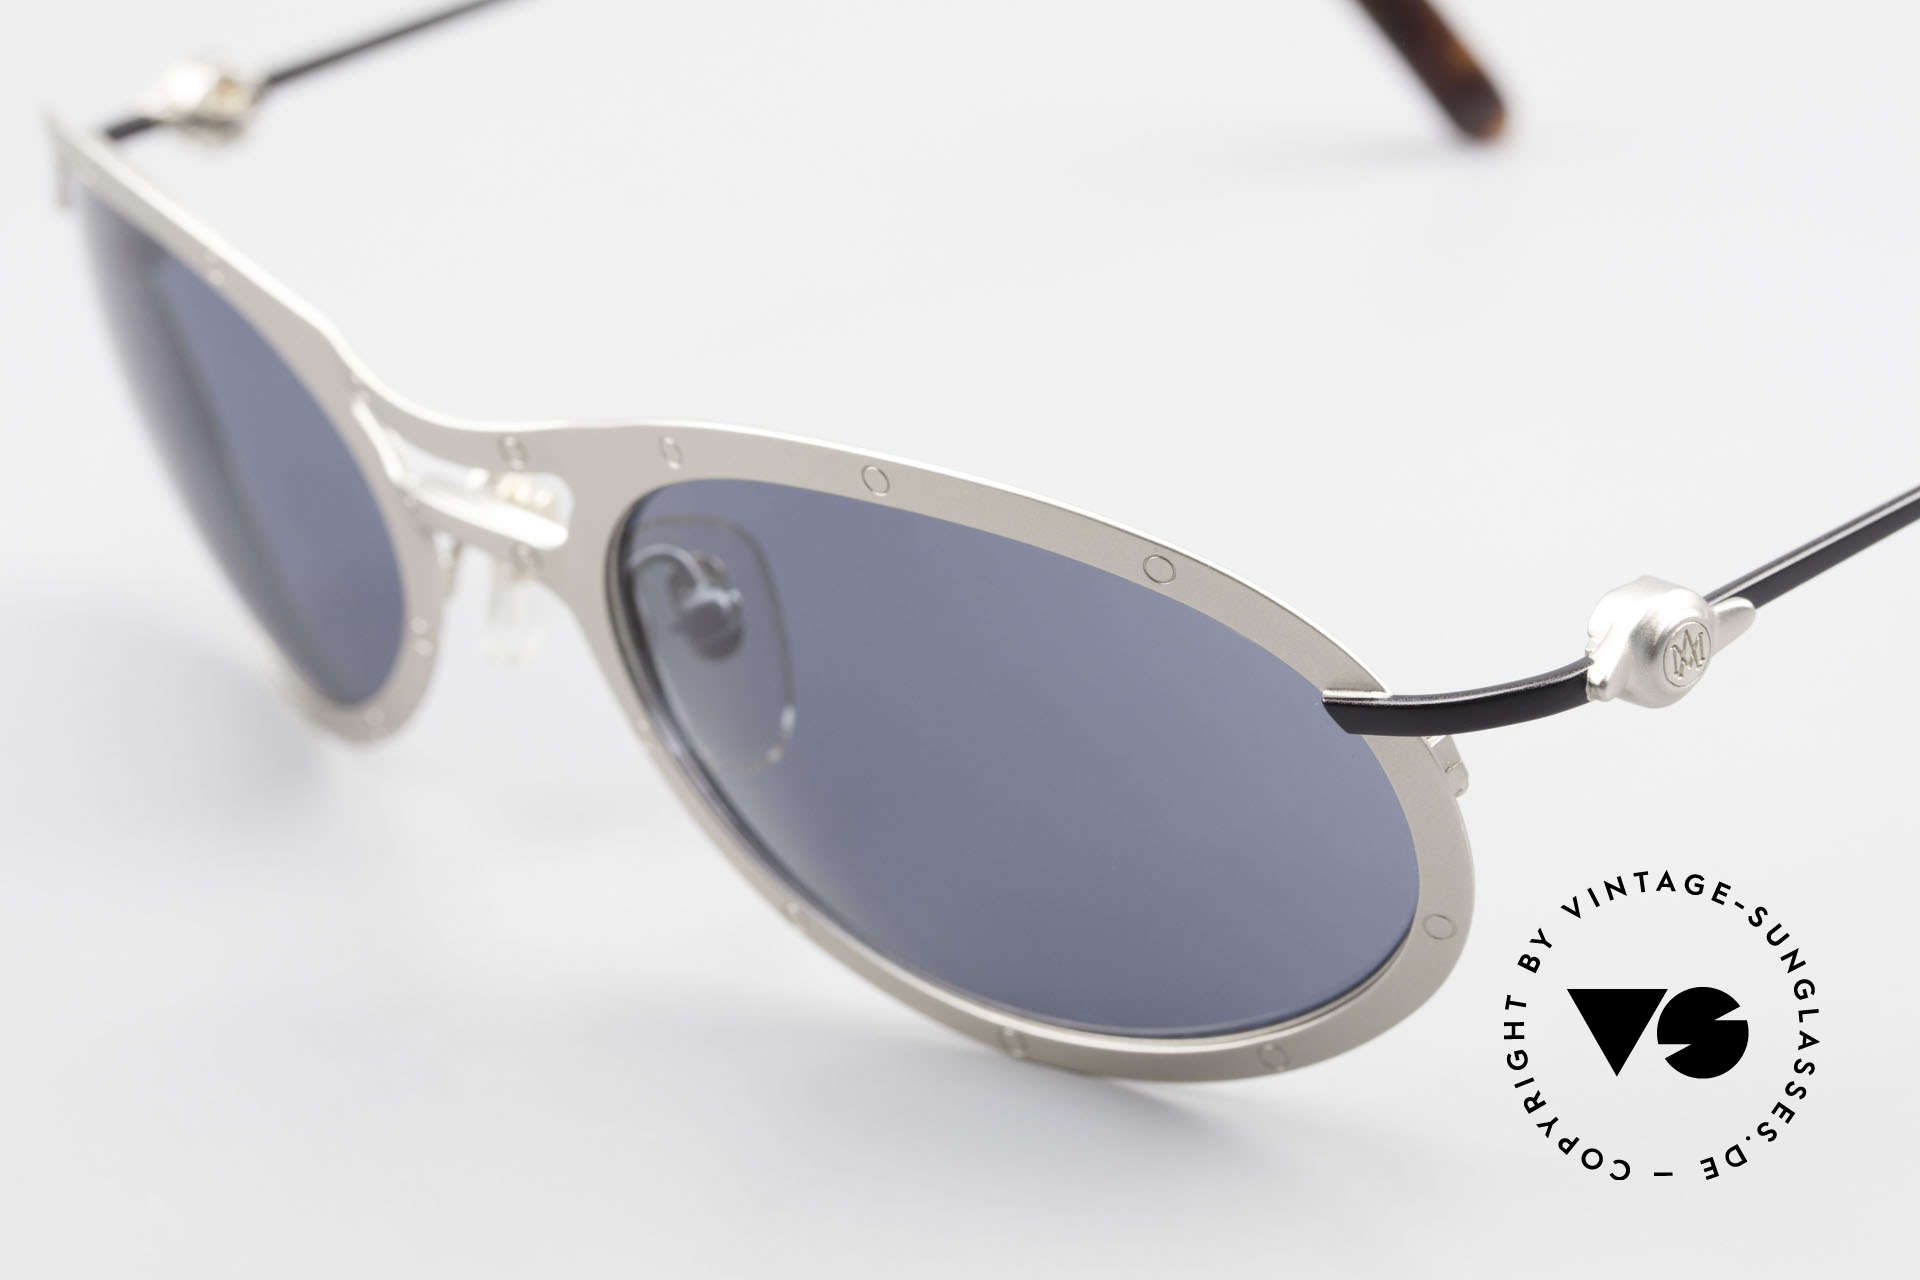 Aston Martin AM33 Sporty Men's Sunglasses 90's, precious rarity in TOP-quality + orig. Aston Marin case, Made for Men